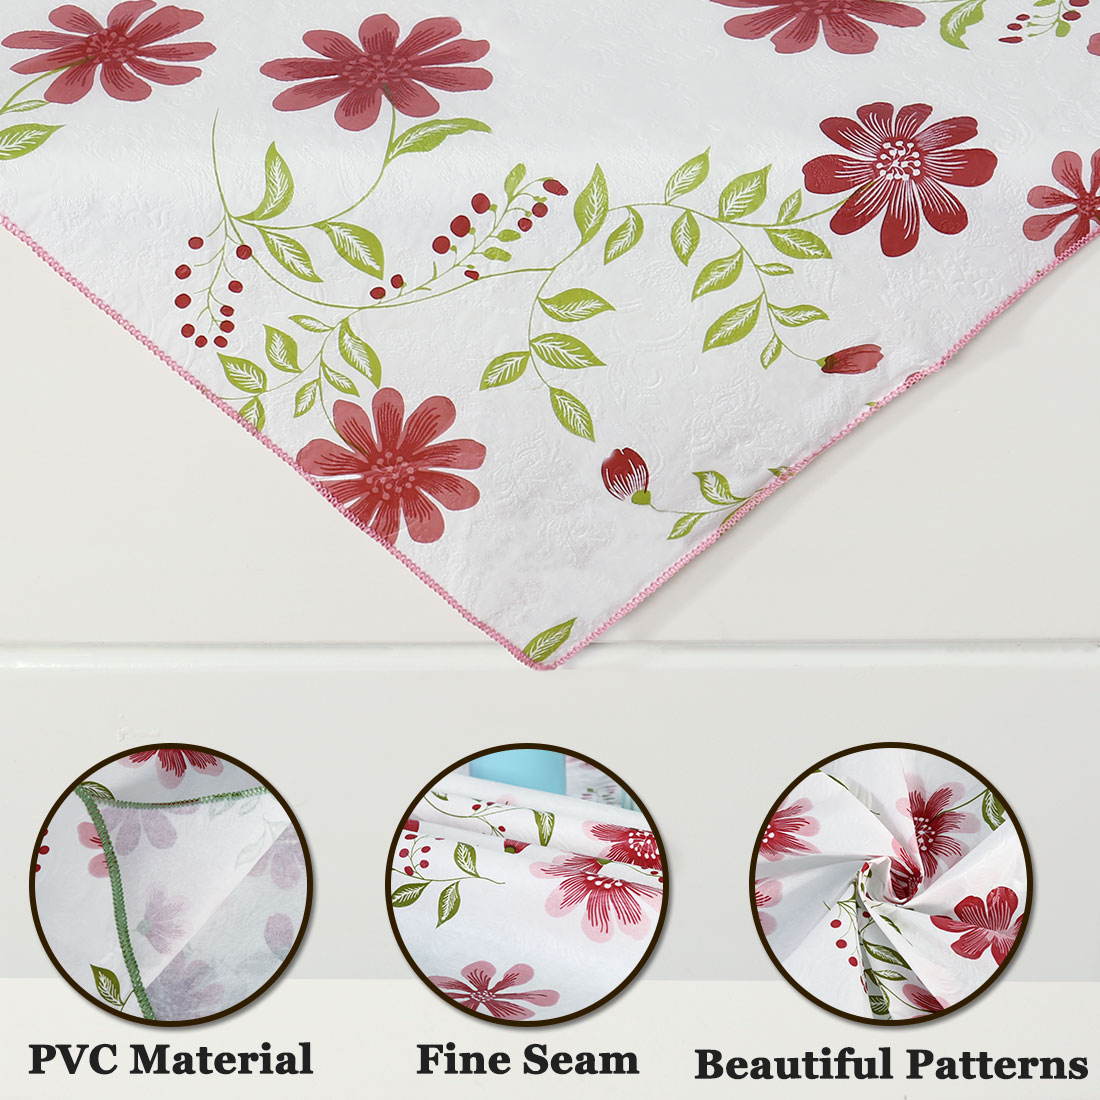 """Seamless Stain Water Resistant PVC Rectangular Tablecloth 24"""" x 24"""" Red Flower - image 3 of 8"""